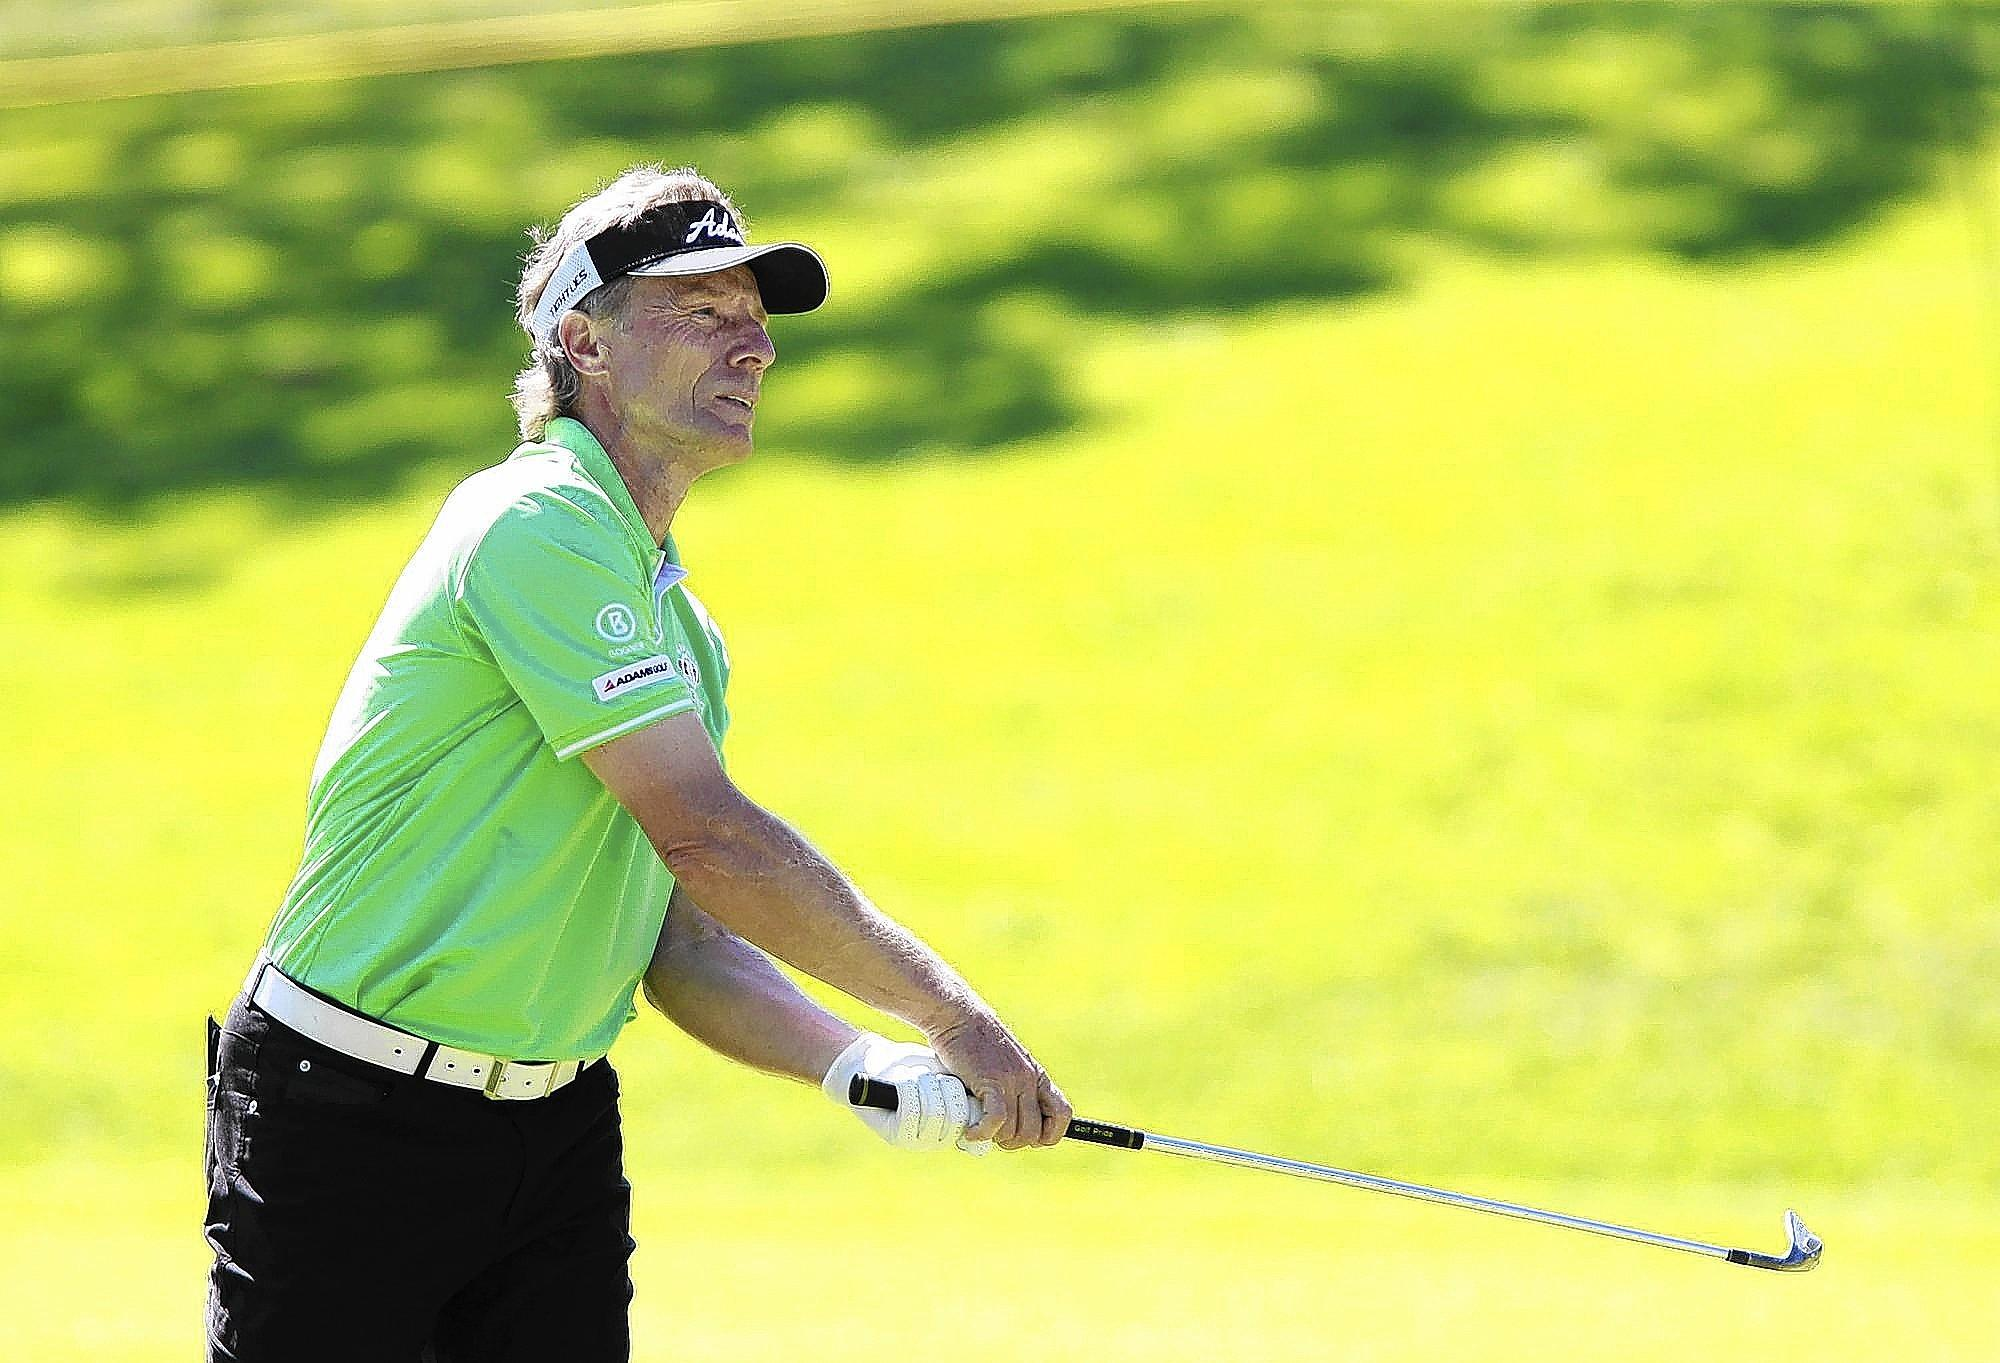 First-round leader Bernhard Langer hits an approach shot on seventh hole during the first round of the Toshiba Classic at the Newport Beach Country Club on Friday.